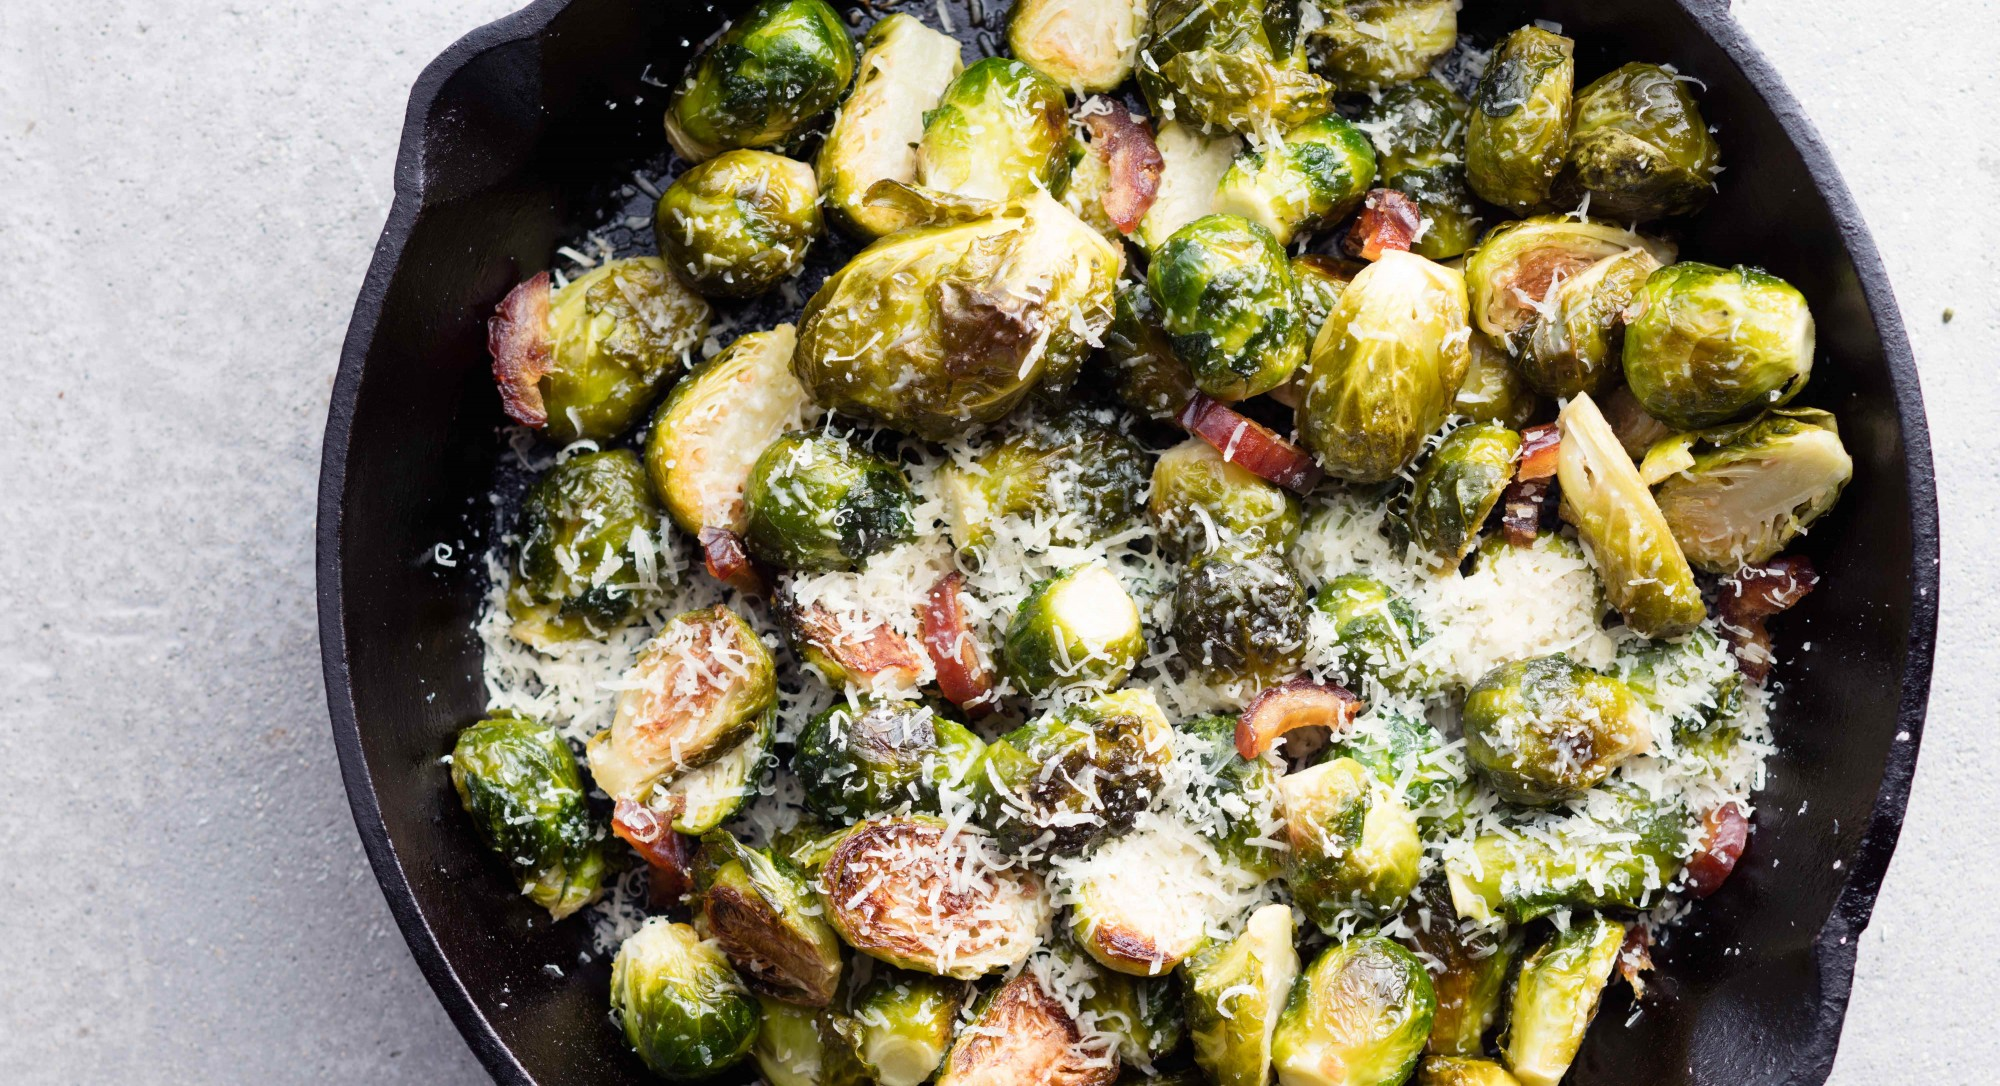 Garlic-Lemon Roasted Brussels Sprouts Recipe